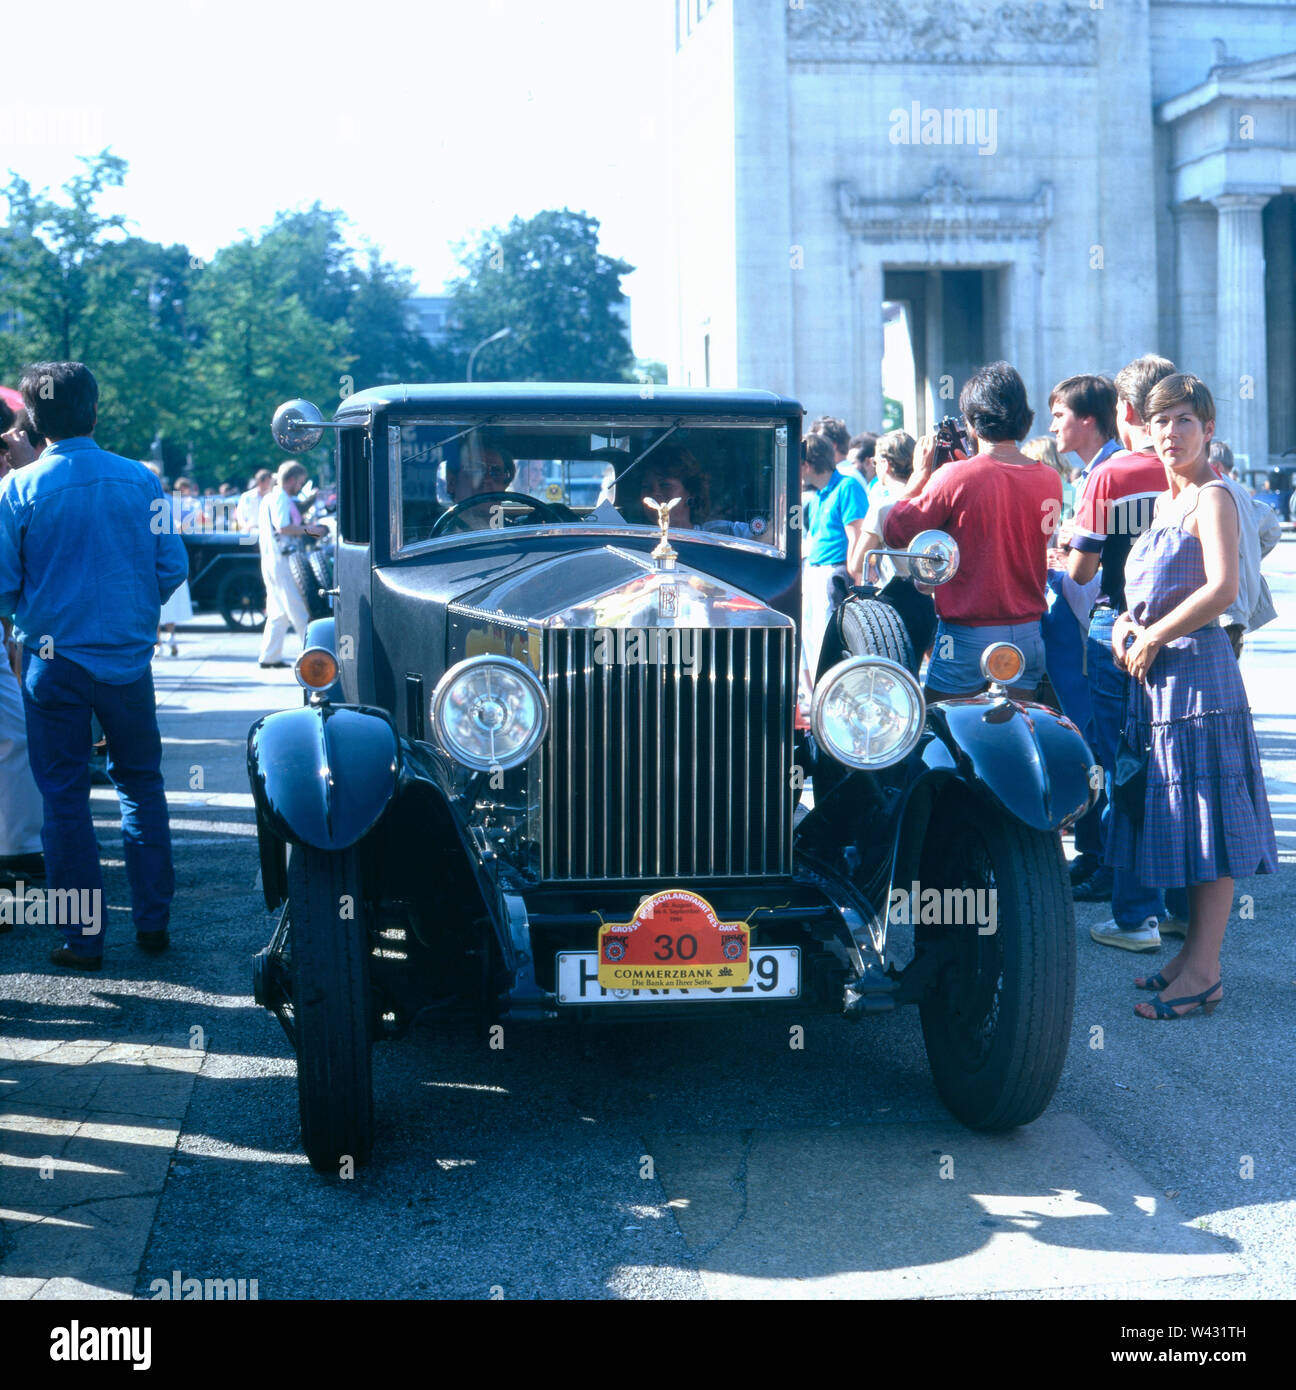 Ein Rolls Royce 20 HP fährt während einer Oldtimershow durch das bayrische München Ende der 1980er Jahre. A Rolls Royce 20 HP drives during a classic car show through the Bavarian Munich in the late 1980s. - Stock Image